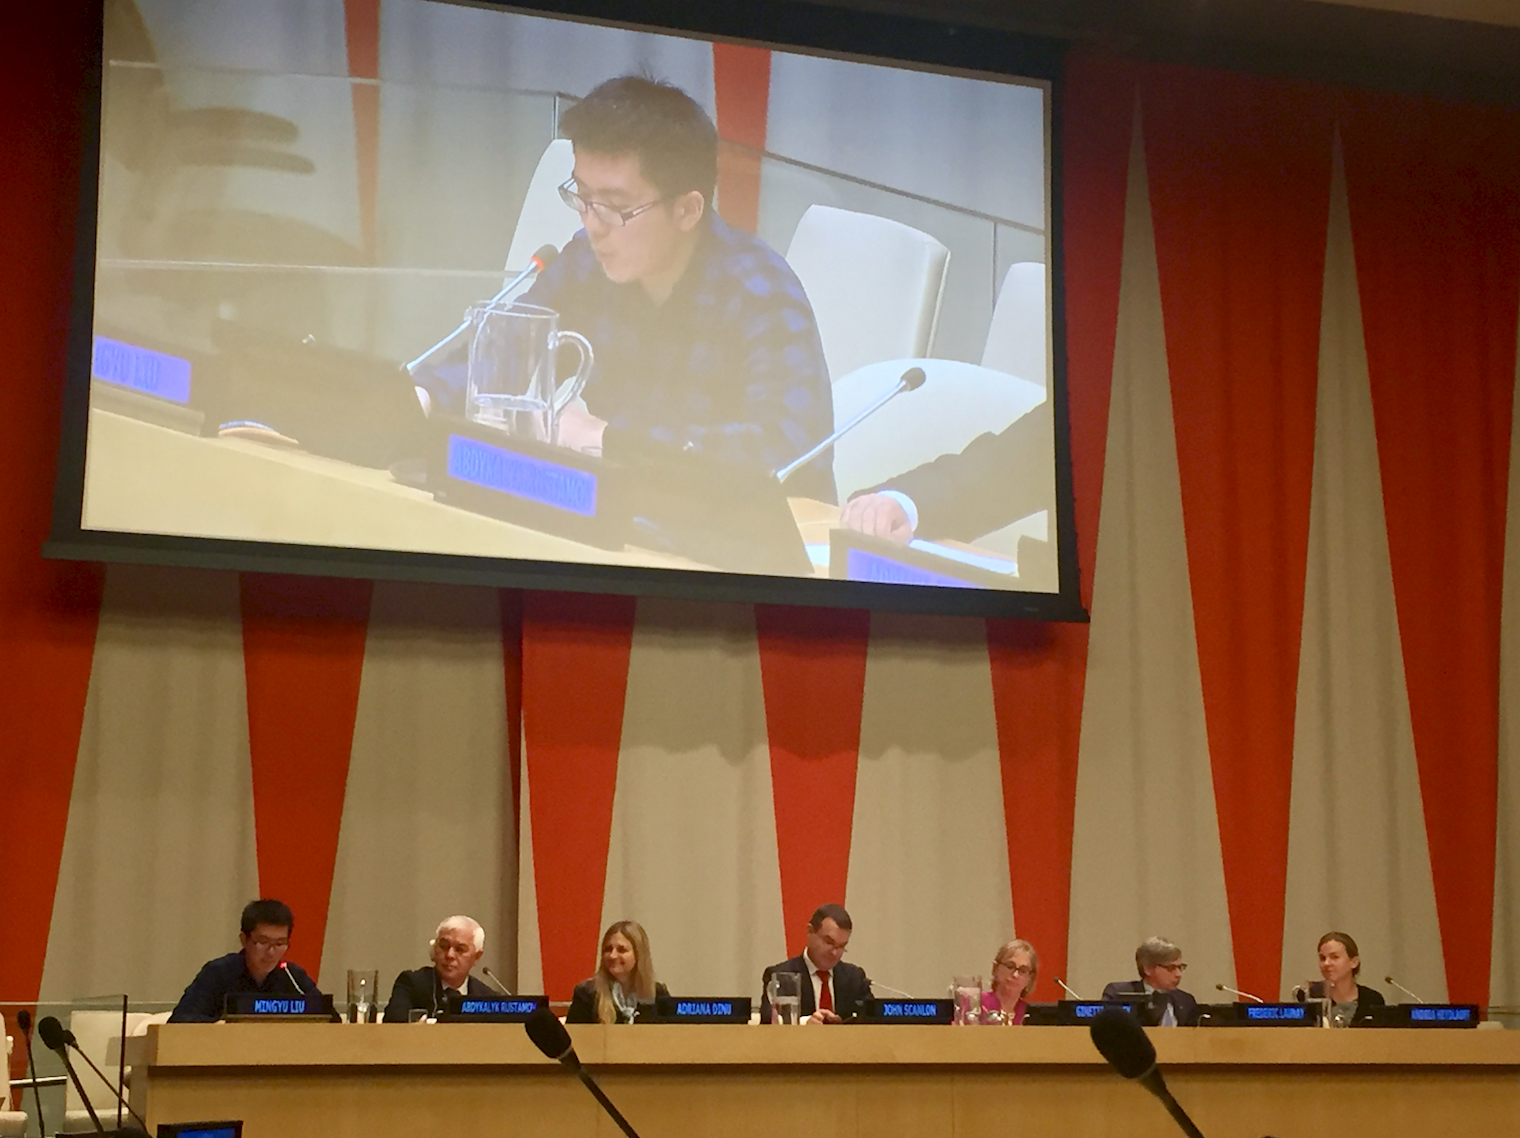 Mingyu Liu spoke with passion about his love for snow leopards and his research on the World Wildlife Day UN panel.